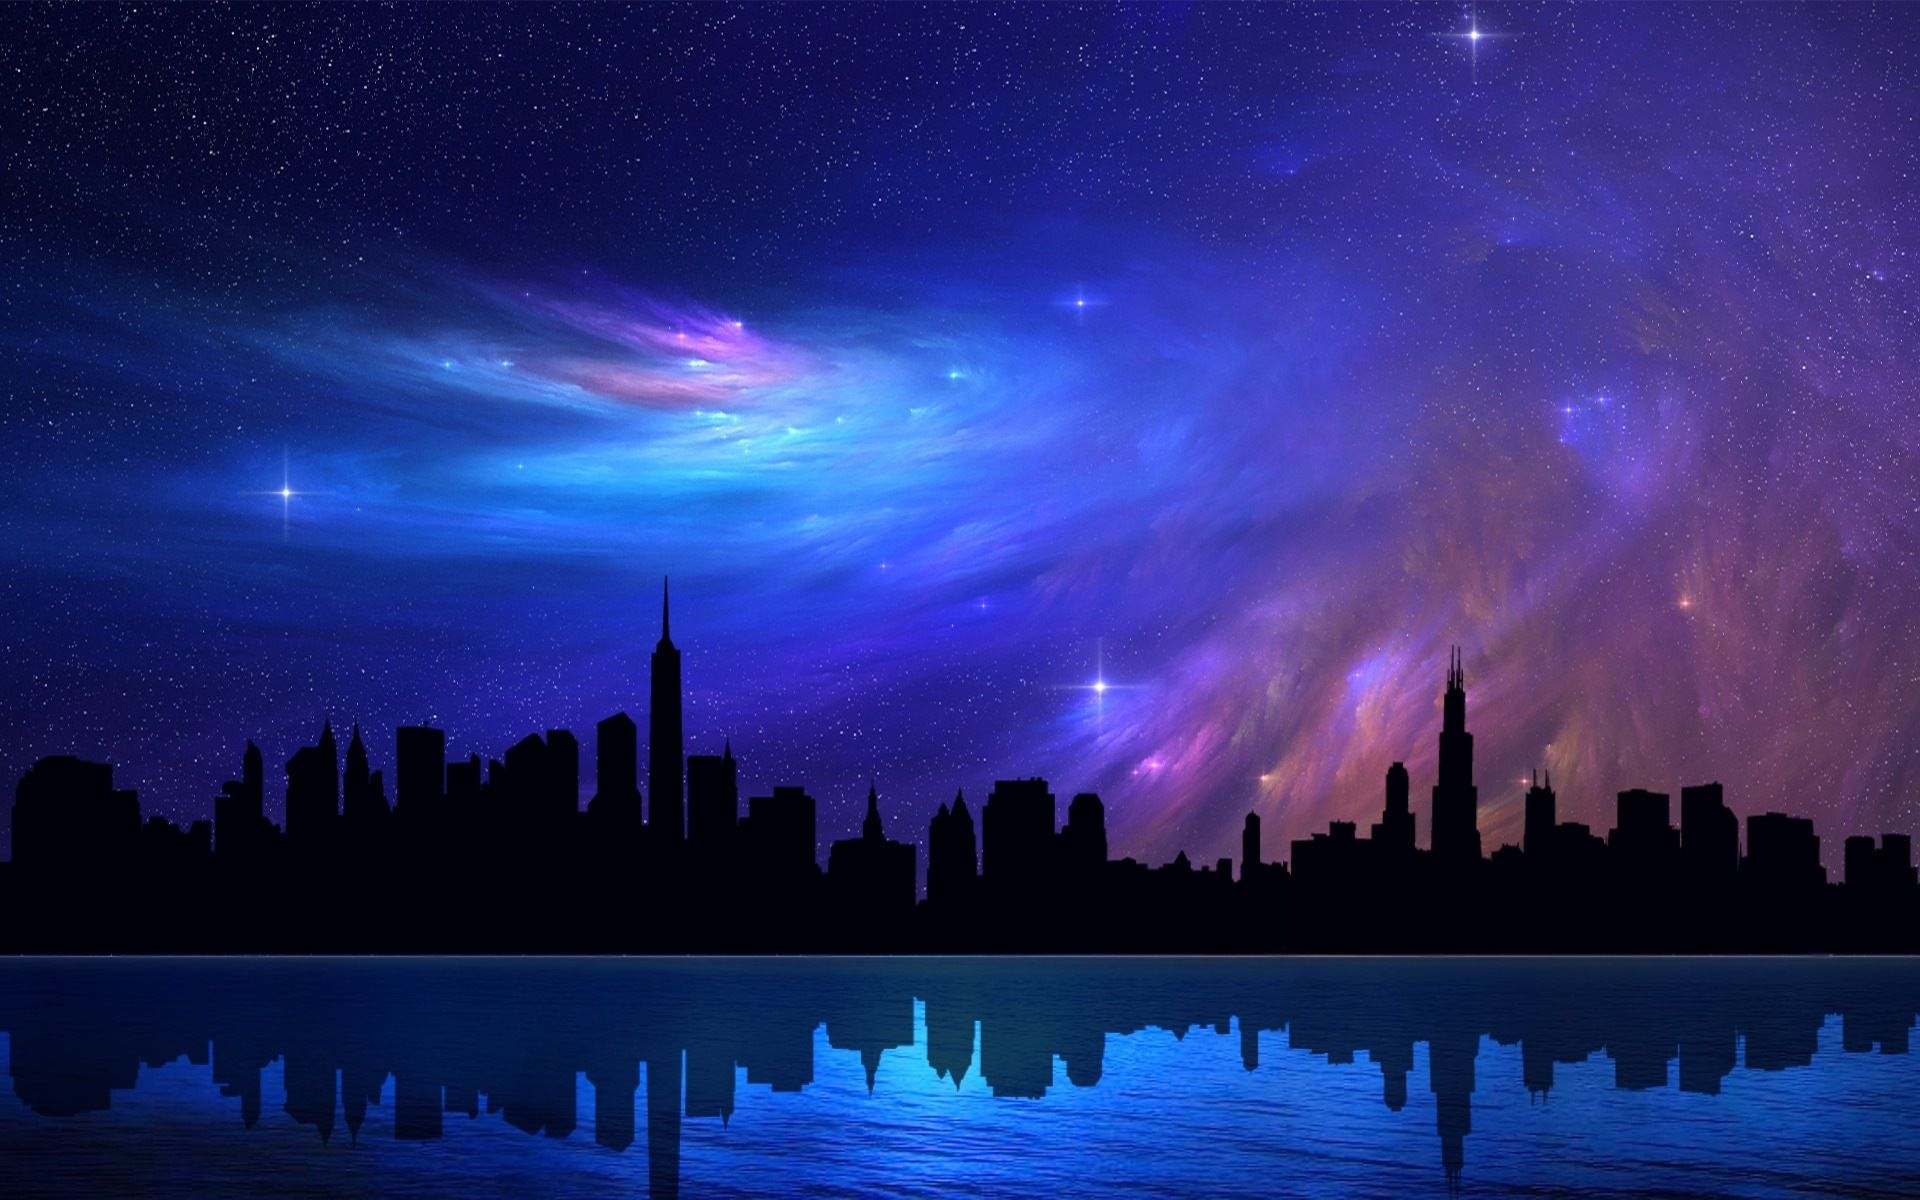 Wallpapers For Beautiful Night Sky With Stars Wallpaper Beautiful Night Sky Night Sky Wallpaper Sky Wallpaper